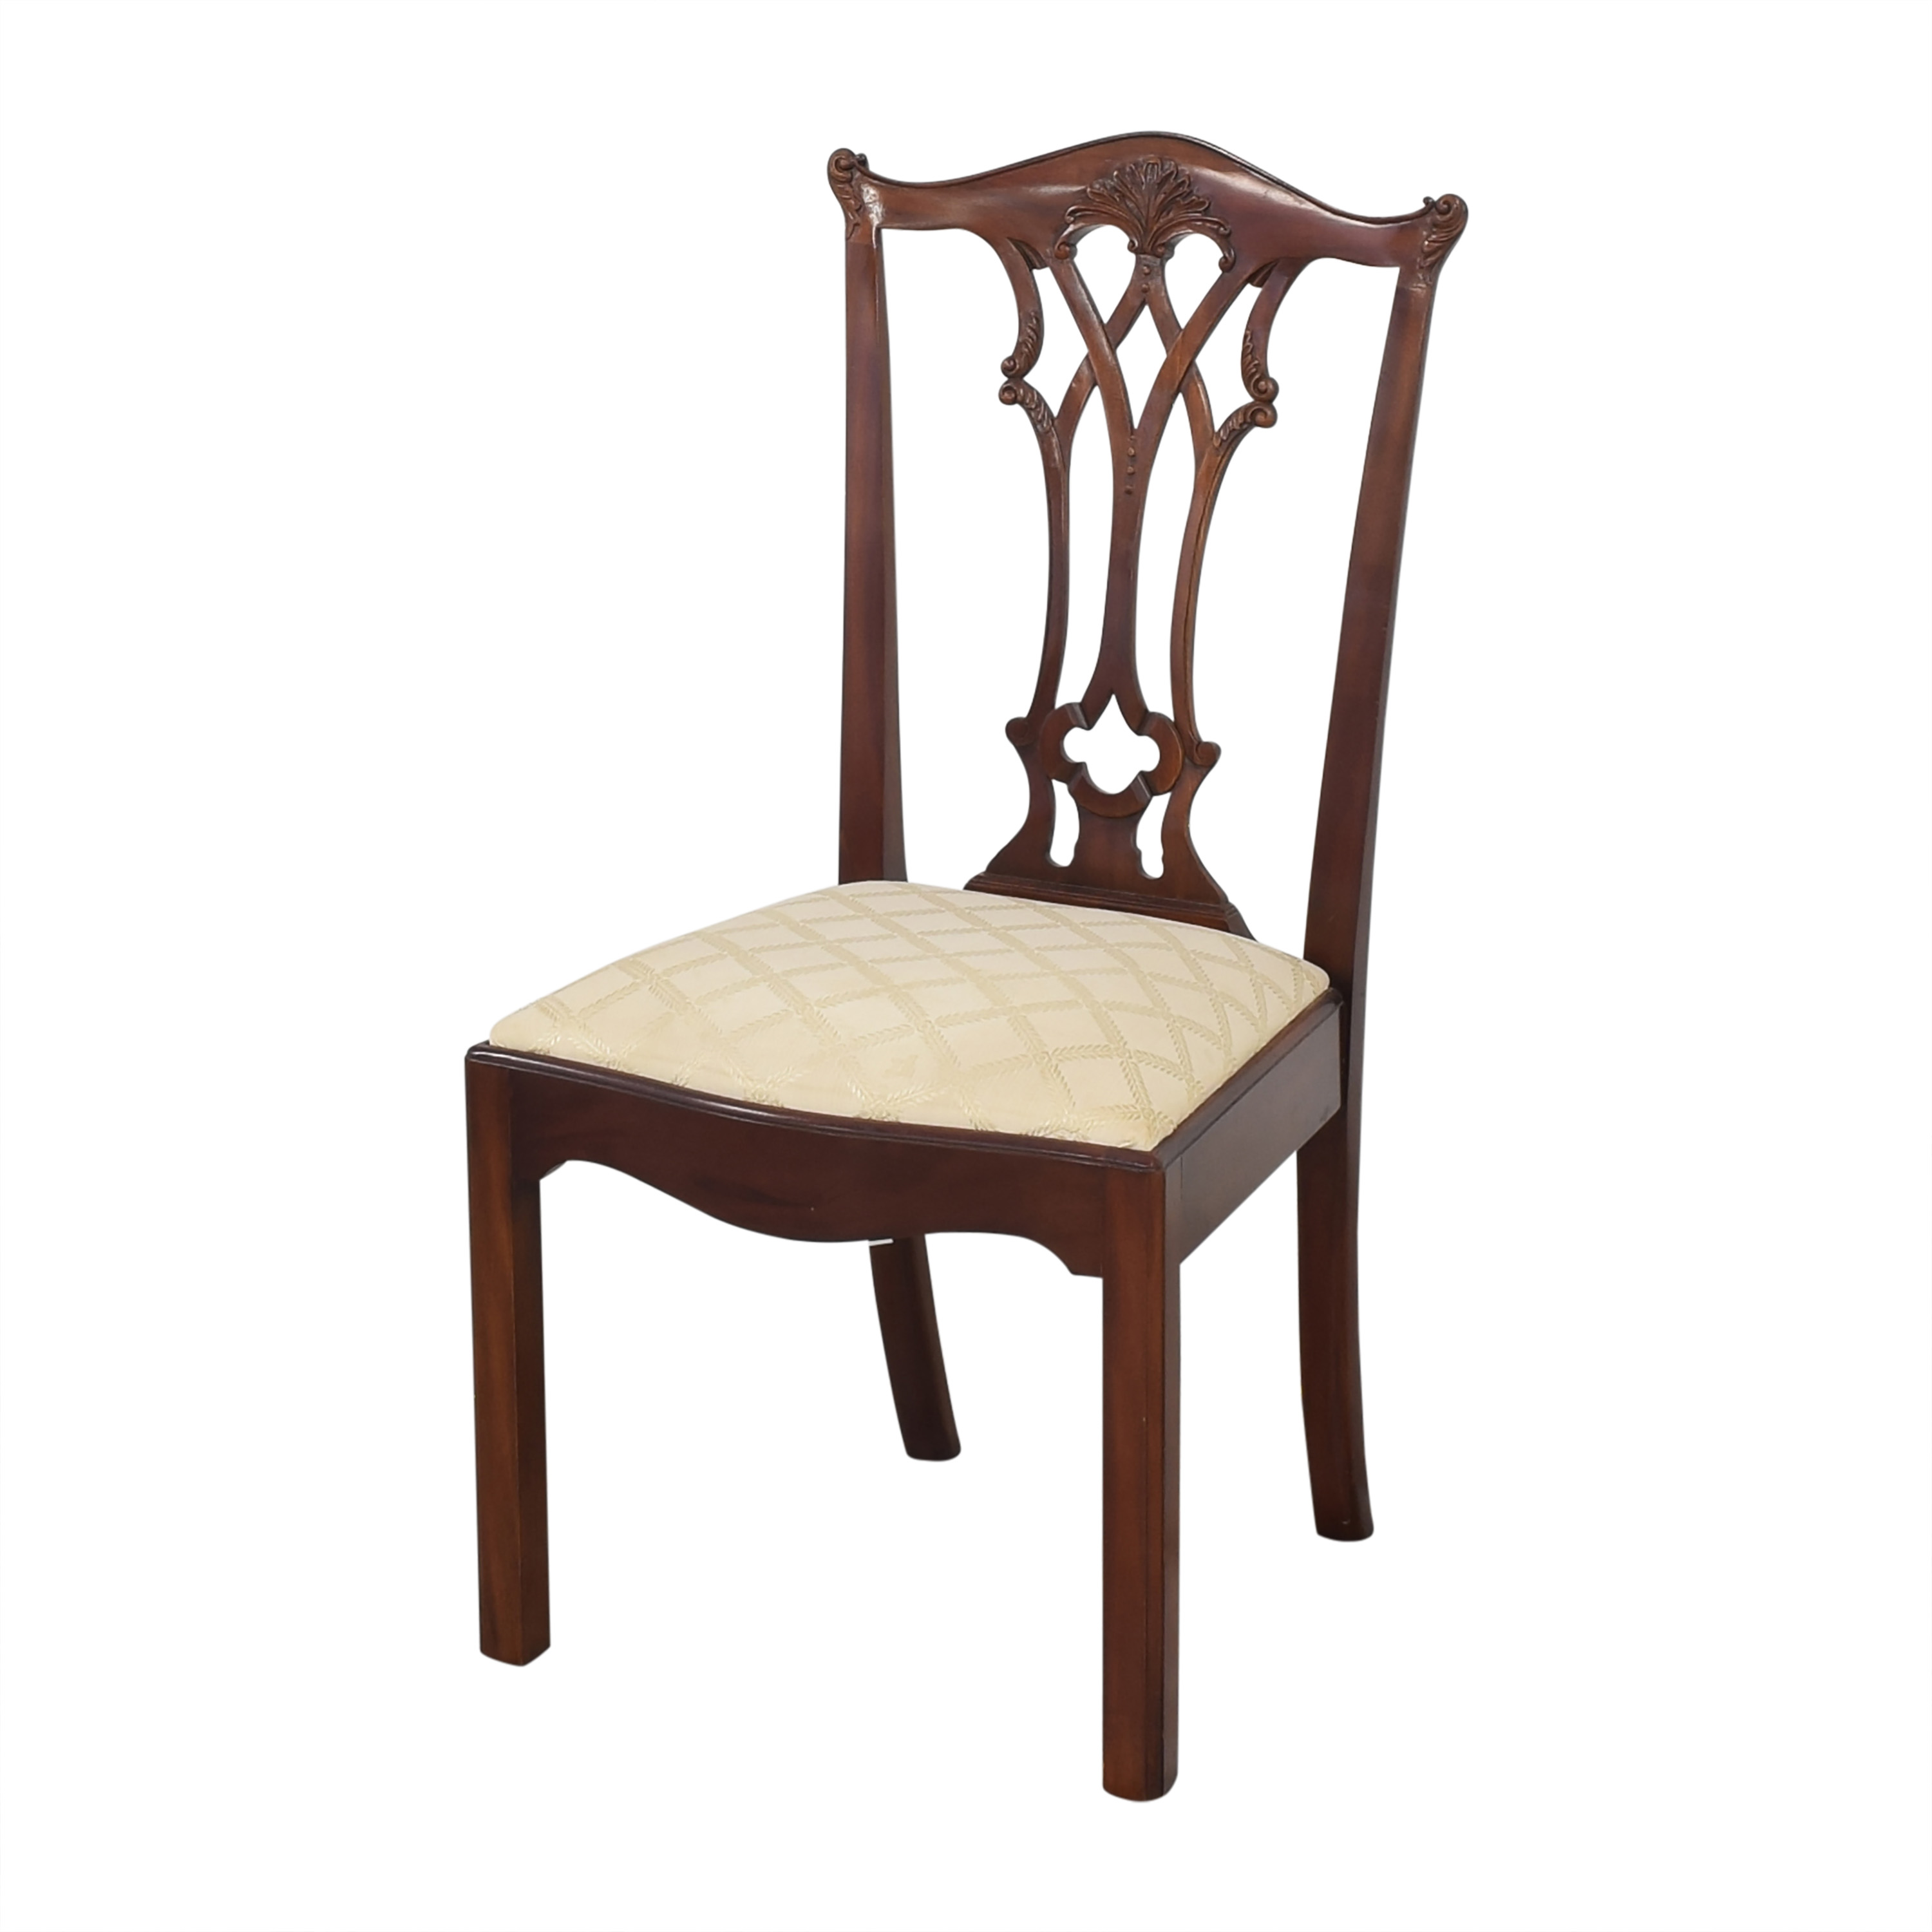 Maitland-Smith Connecticut Dining Chairs sale